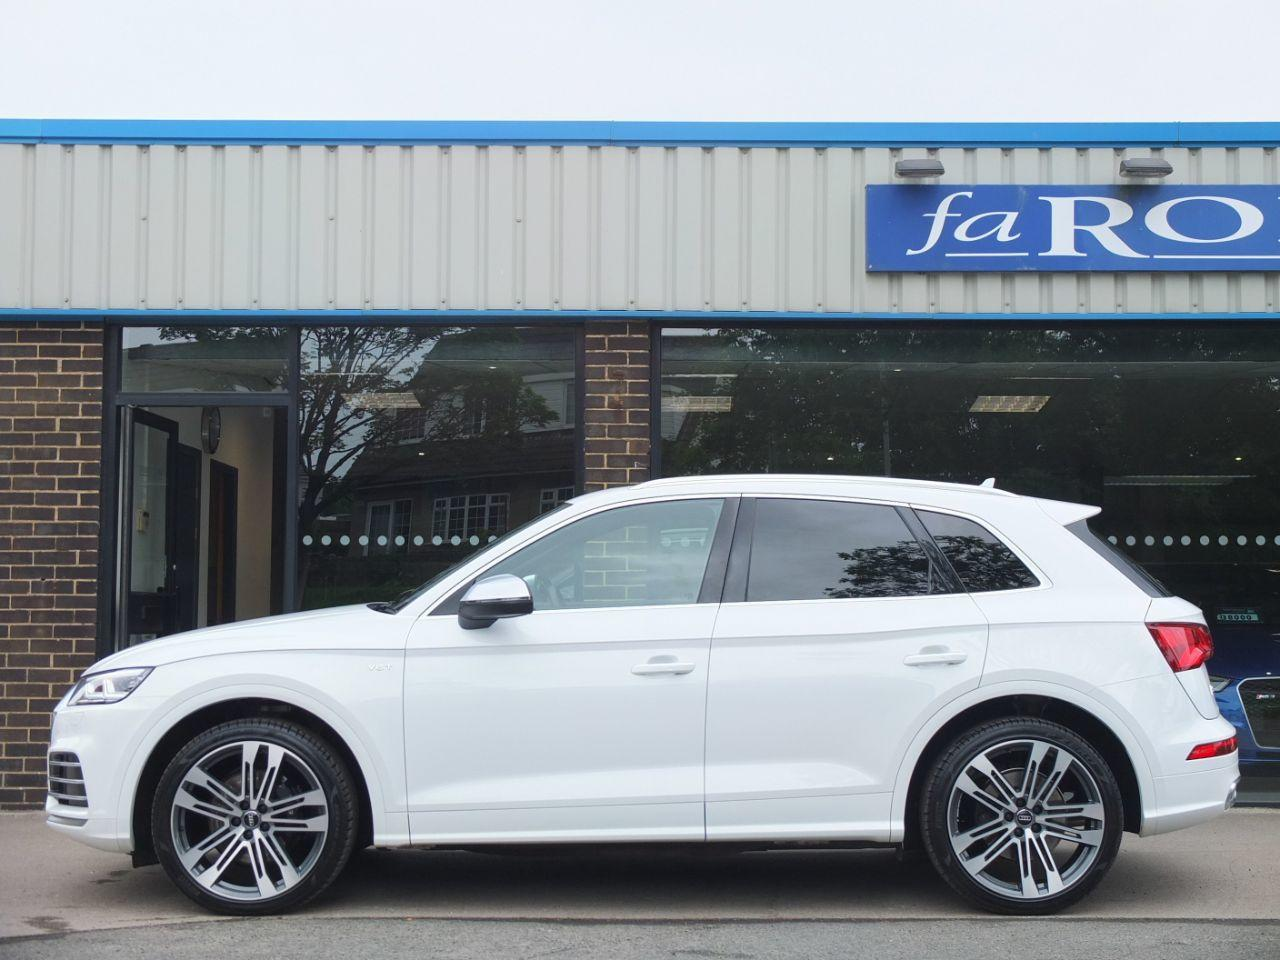 Audi Q5 SQ5 3.0 TFSI V6 quattro Auto 354ps Estate Petrol Ibis White